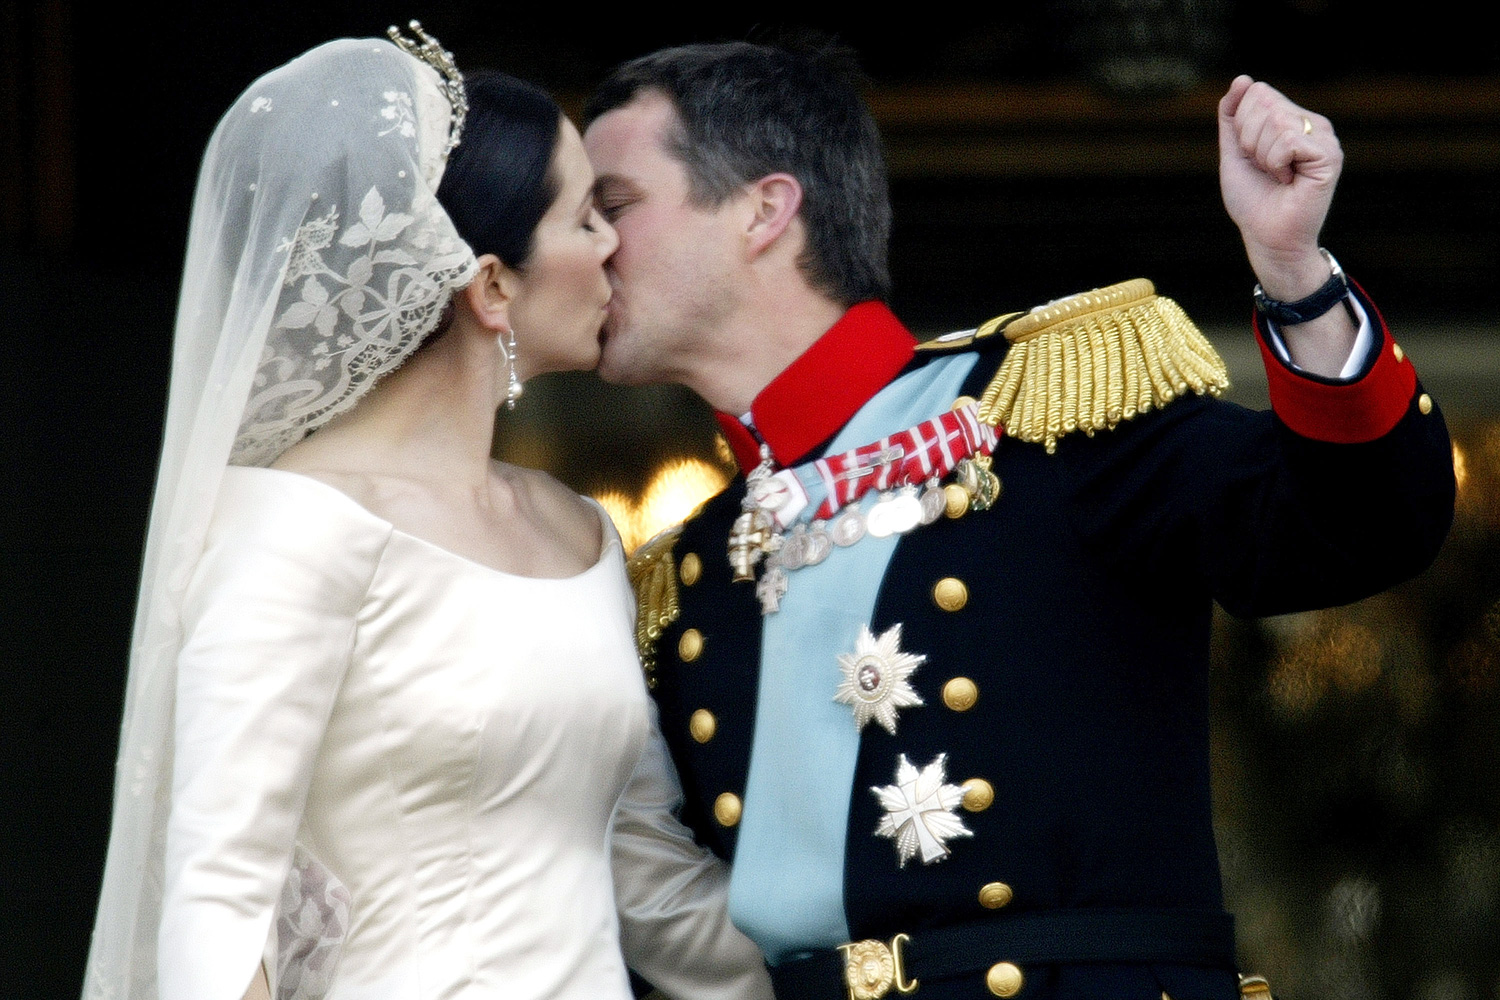 Danish Crown Prince Frederik and his bride Princess Mary kiss as the Royal couple appear on the balcony of Christian VII's Palace after their wedding on May 14, 2004 in Copenhagen, Denmark